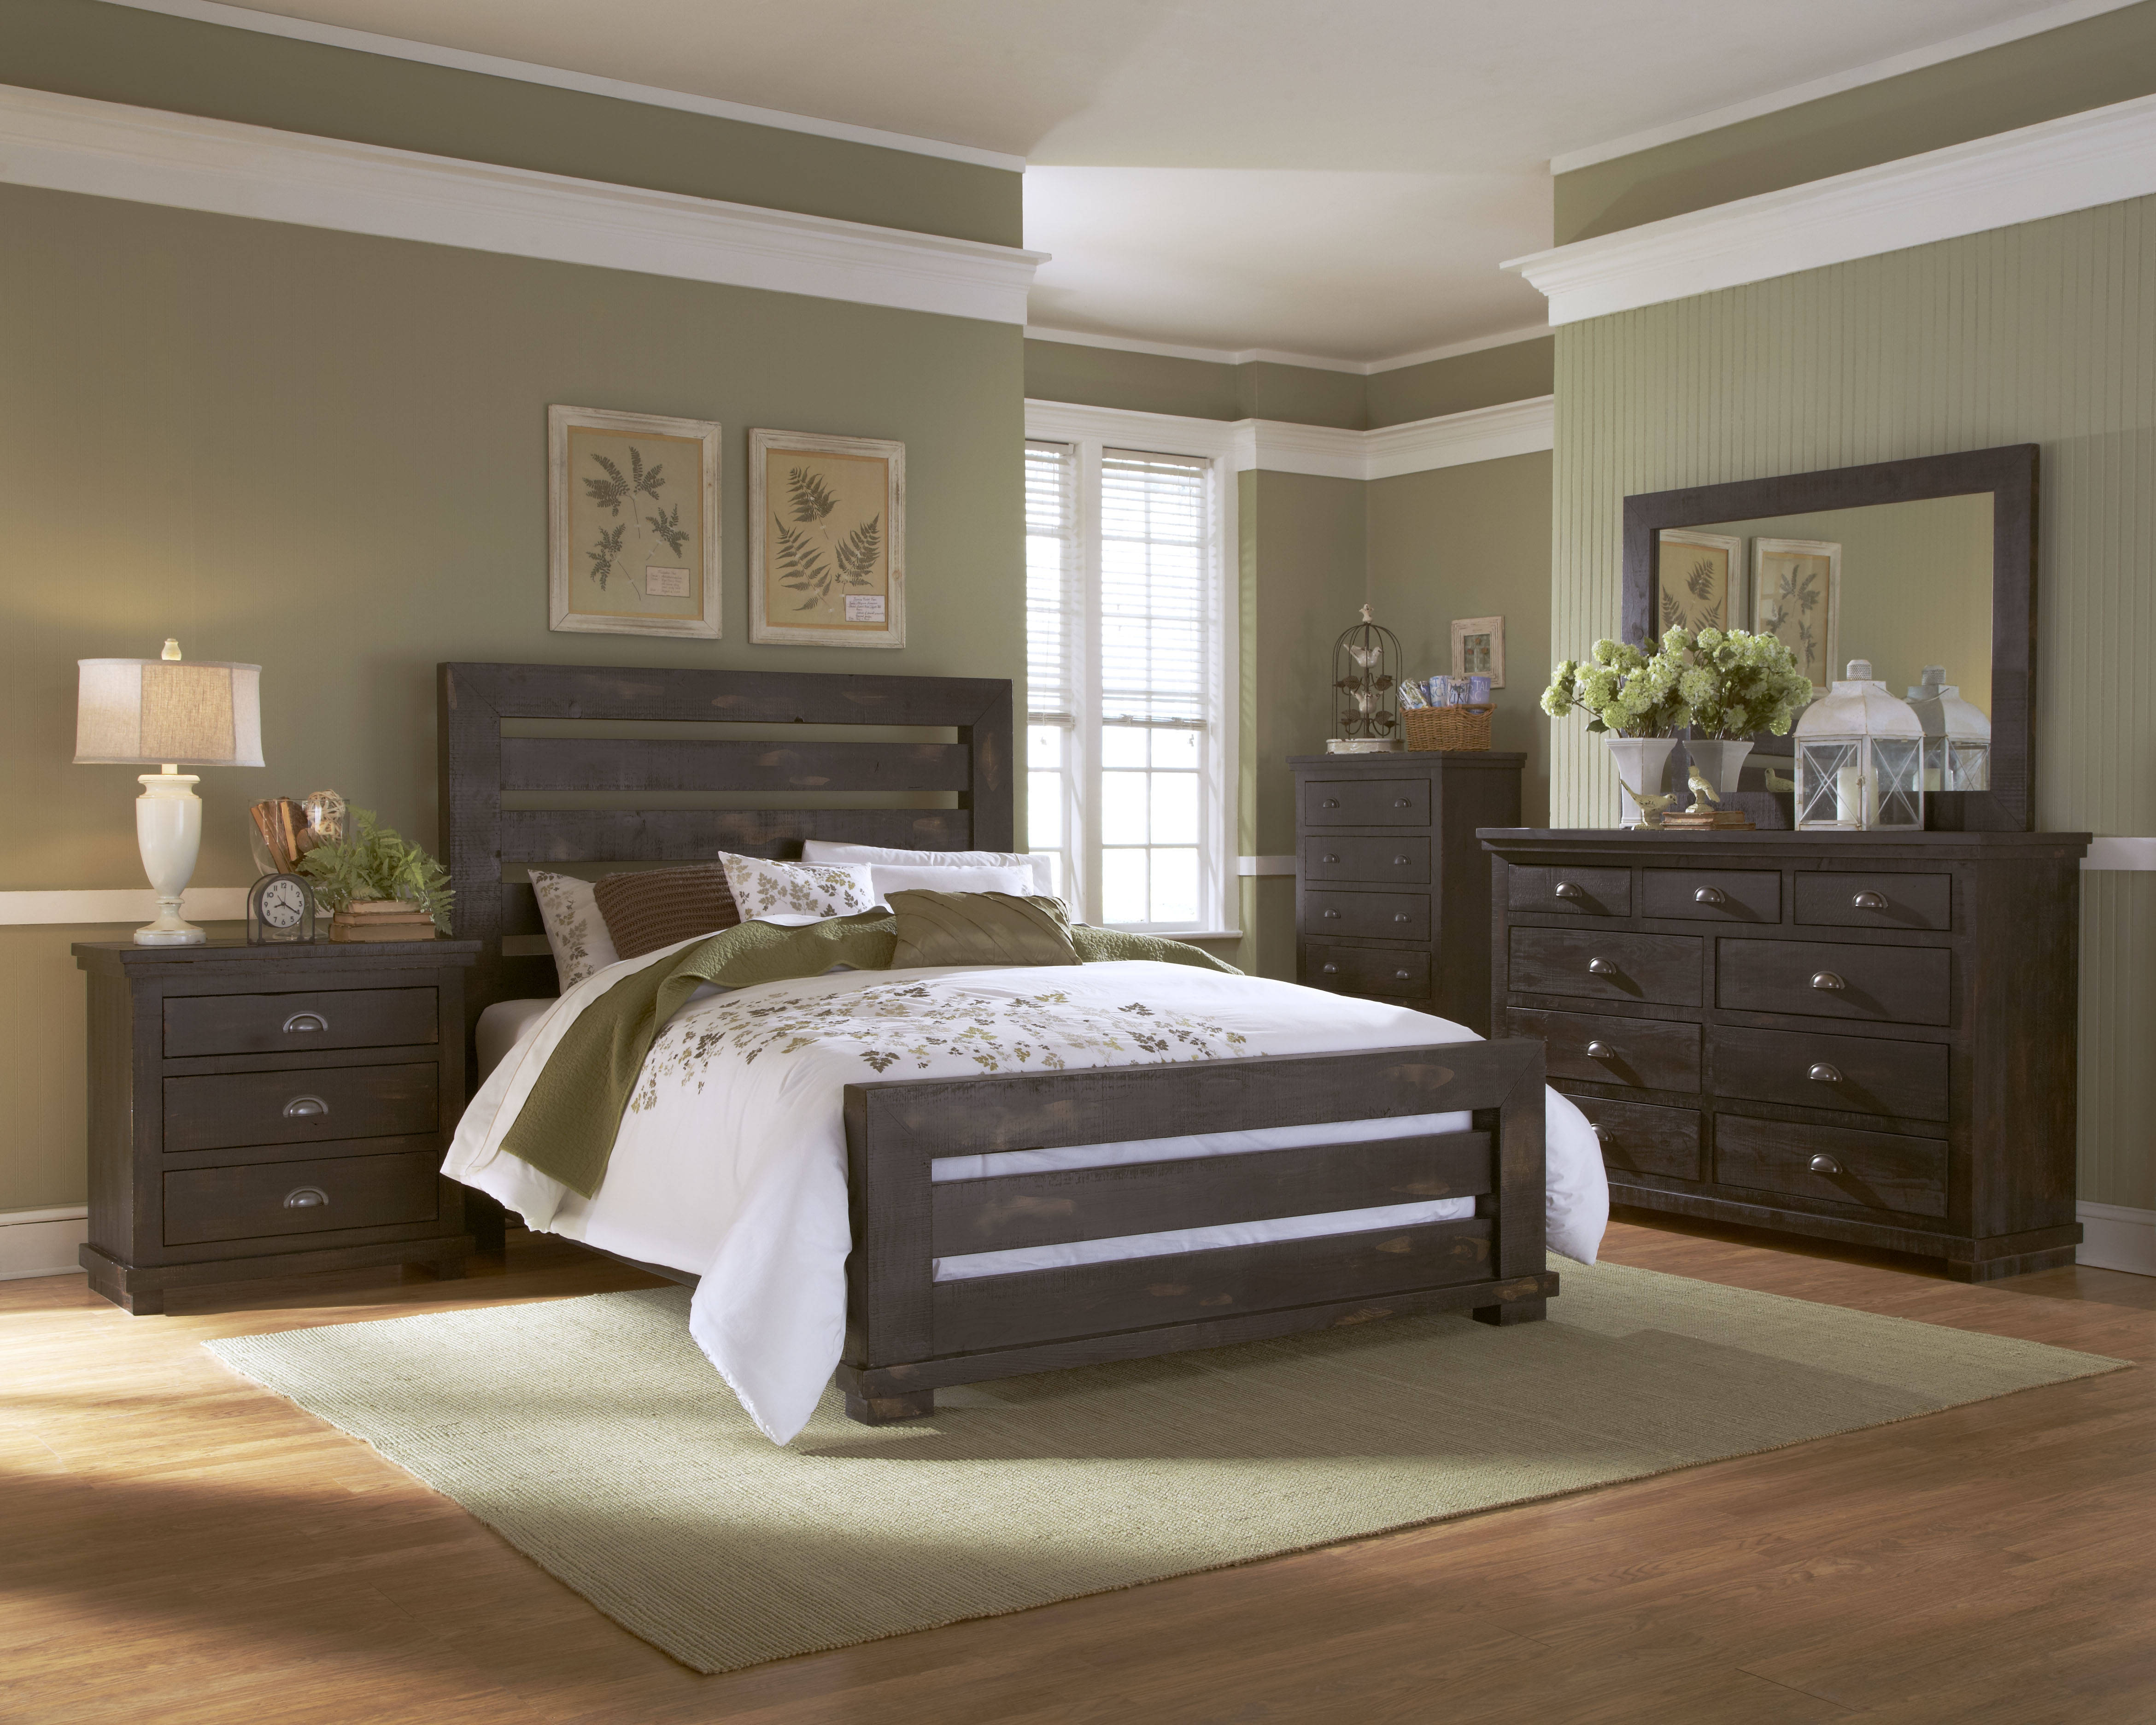 Progressive furniture willow distressed black 2pc bedroom set with king slat bed